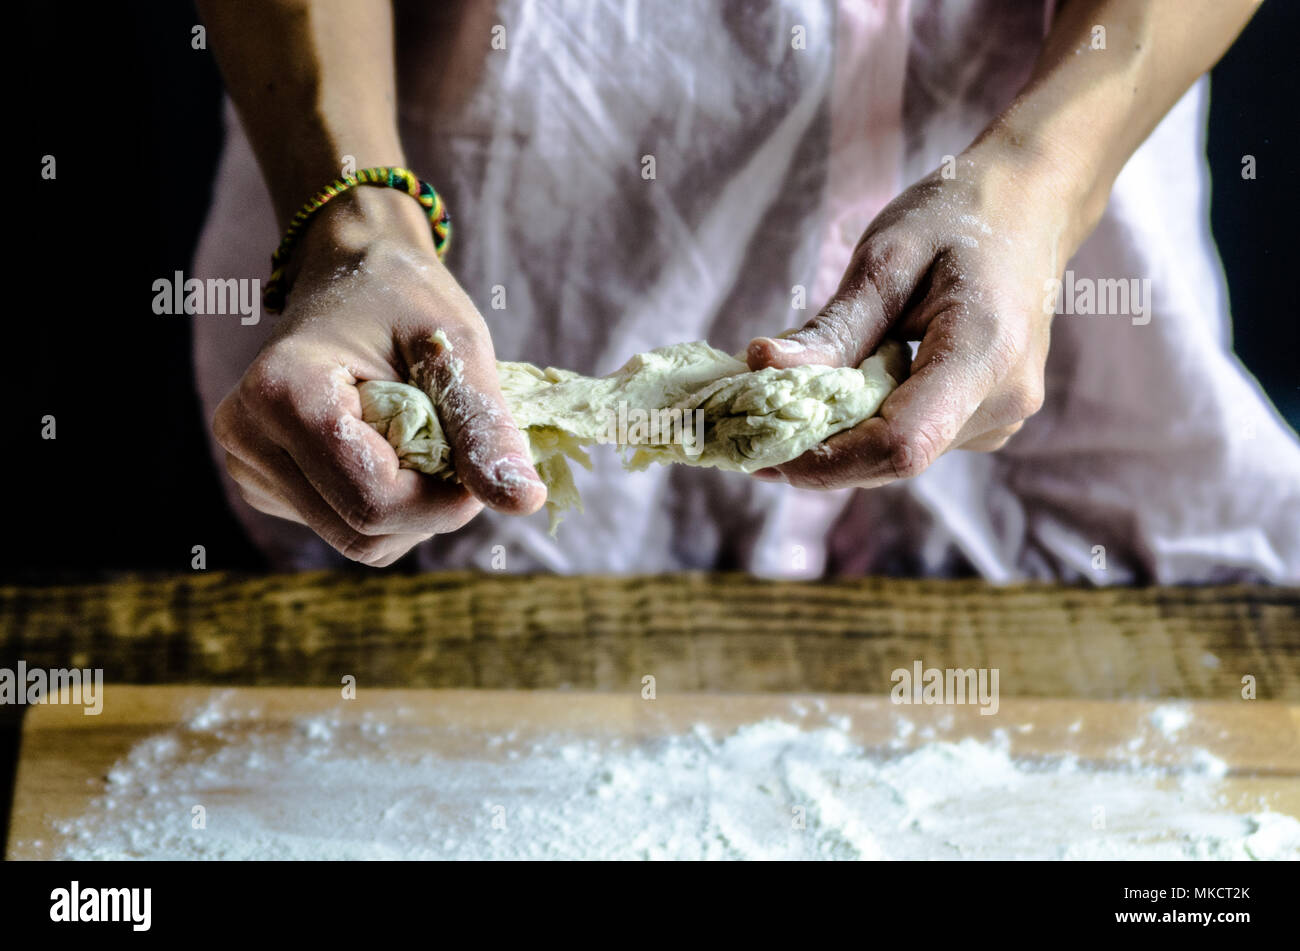 dough docked on the wooden board, traditional pretzel preparation, baker making bread dough in the bakery. hands played with flour and dough. - Stock Image